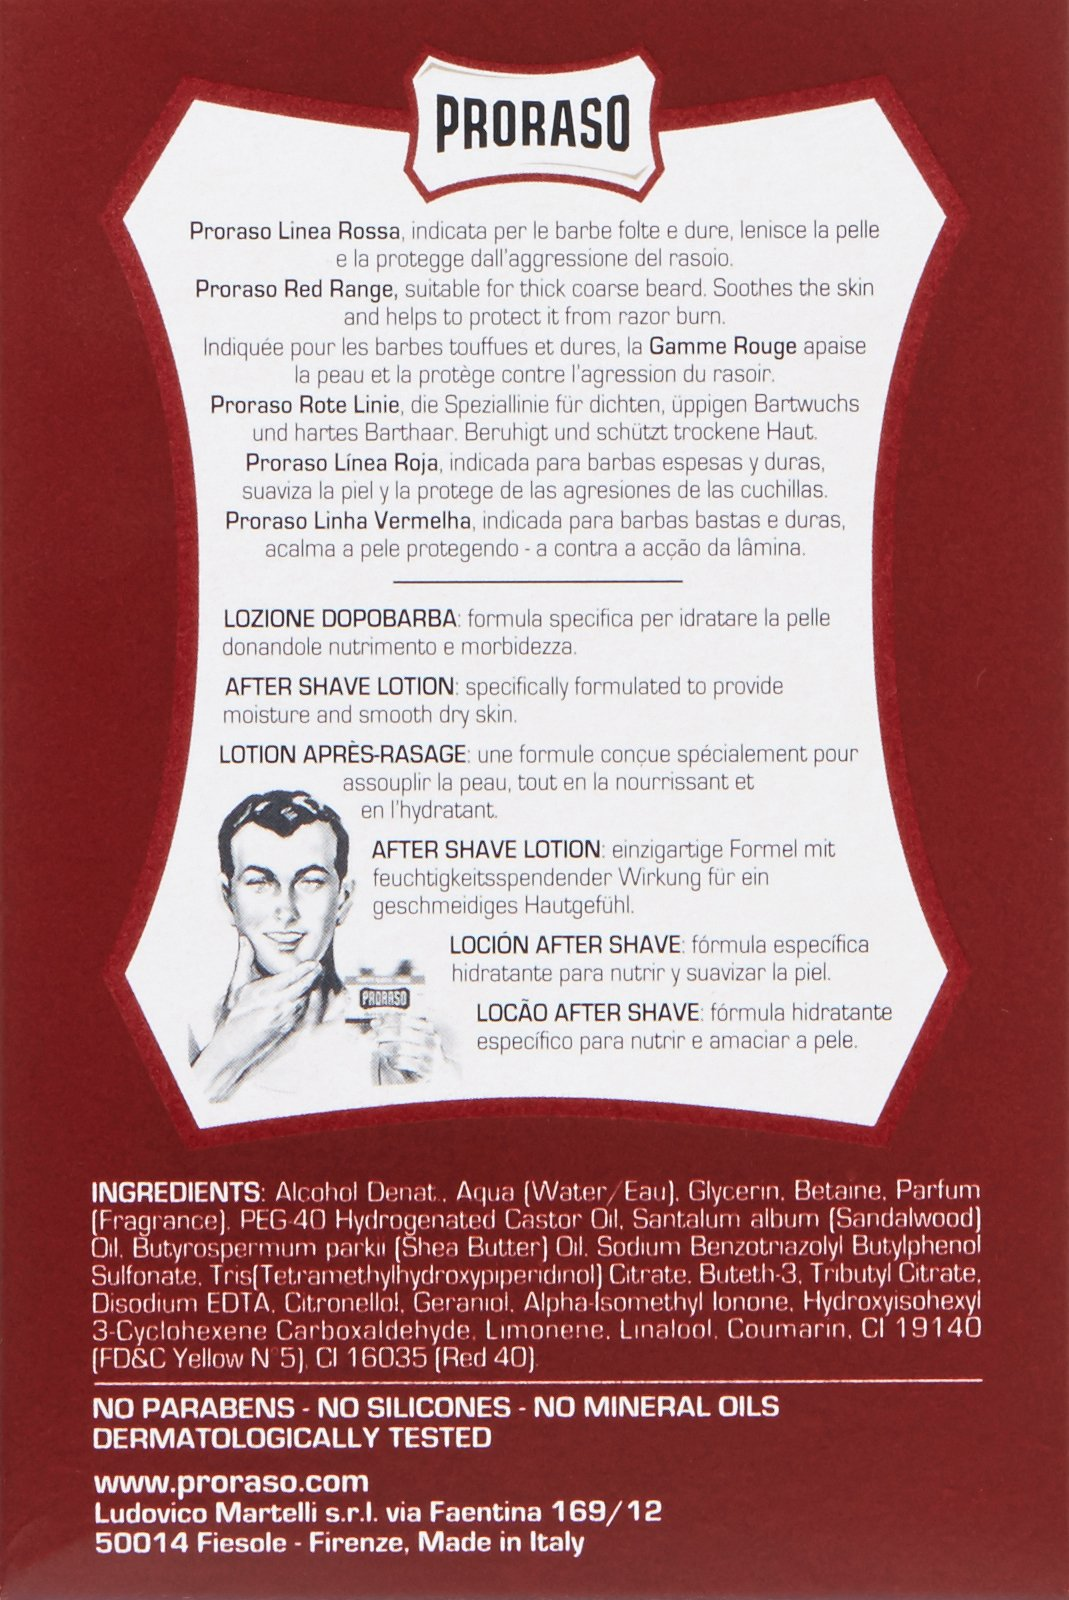 Proraso After Shave Lotion, Moisturizing and Nourishing, 3.4 fl oz by Proraso (Image #2)